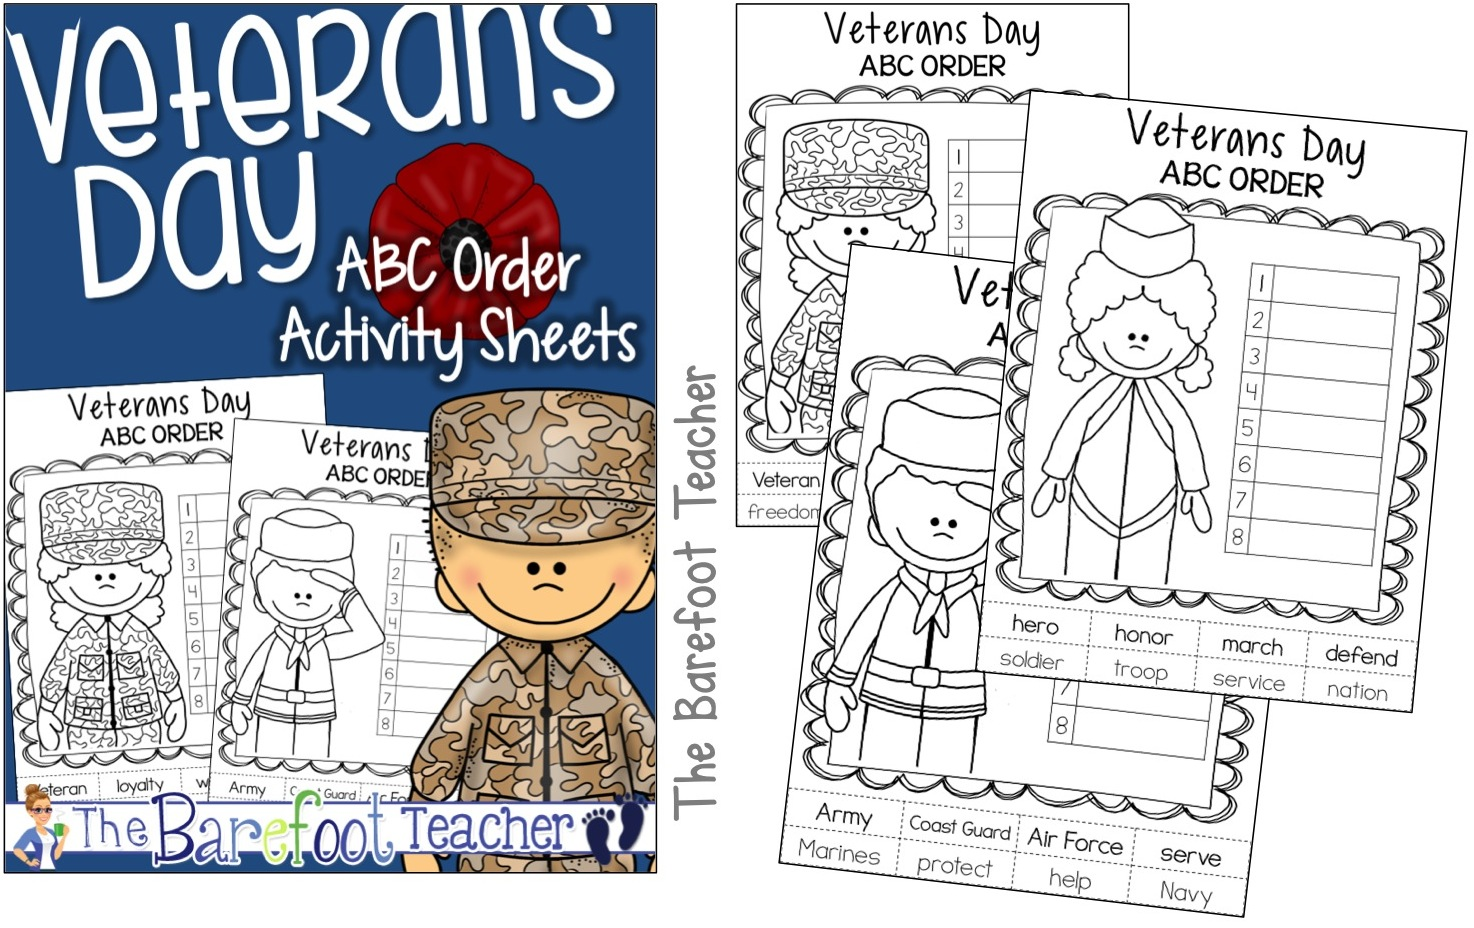 The Barefoot Teacher Veterans Day Resources Amp Activities For Kinders